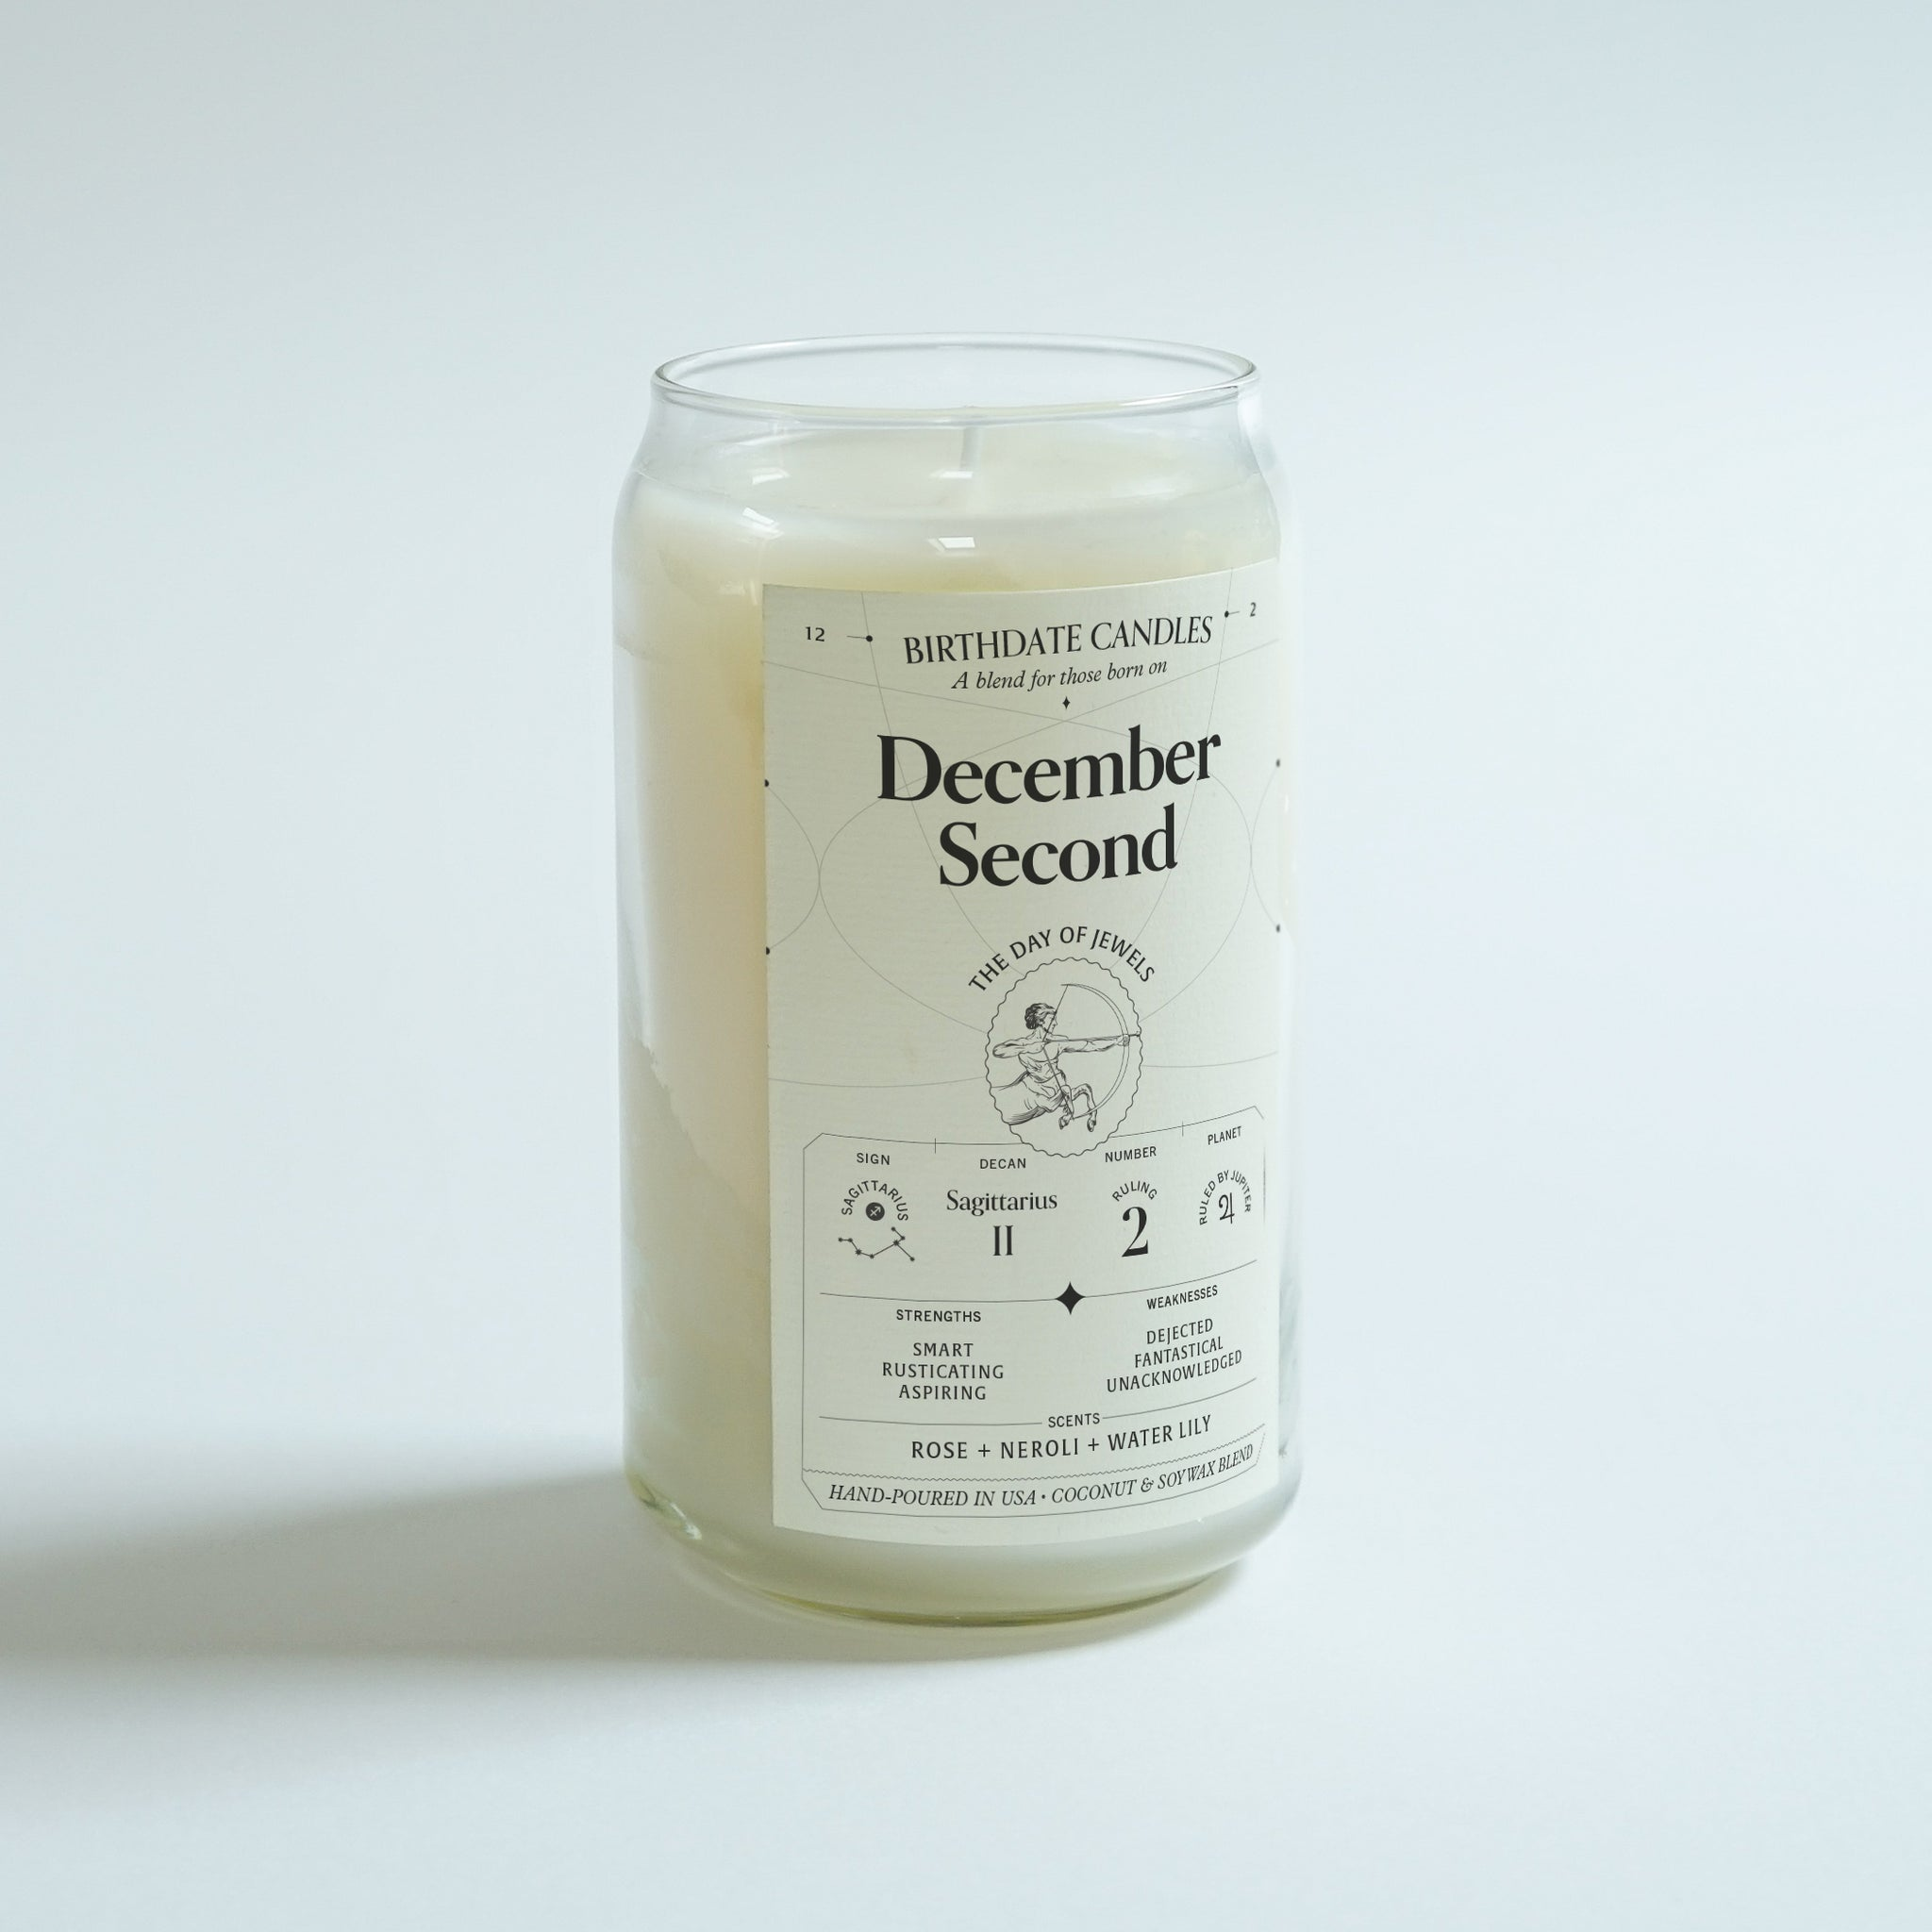 The December Second Birthday Candle